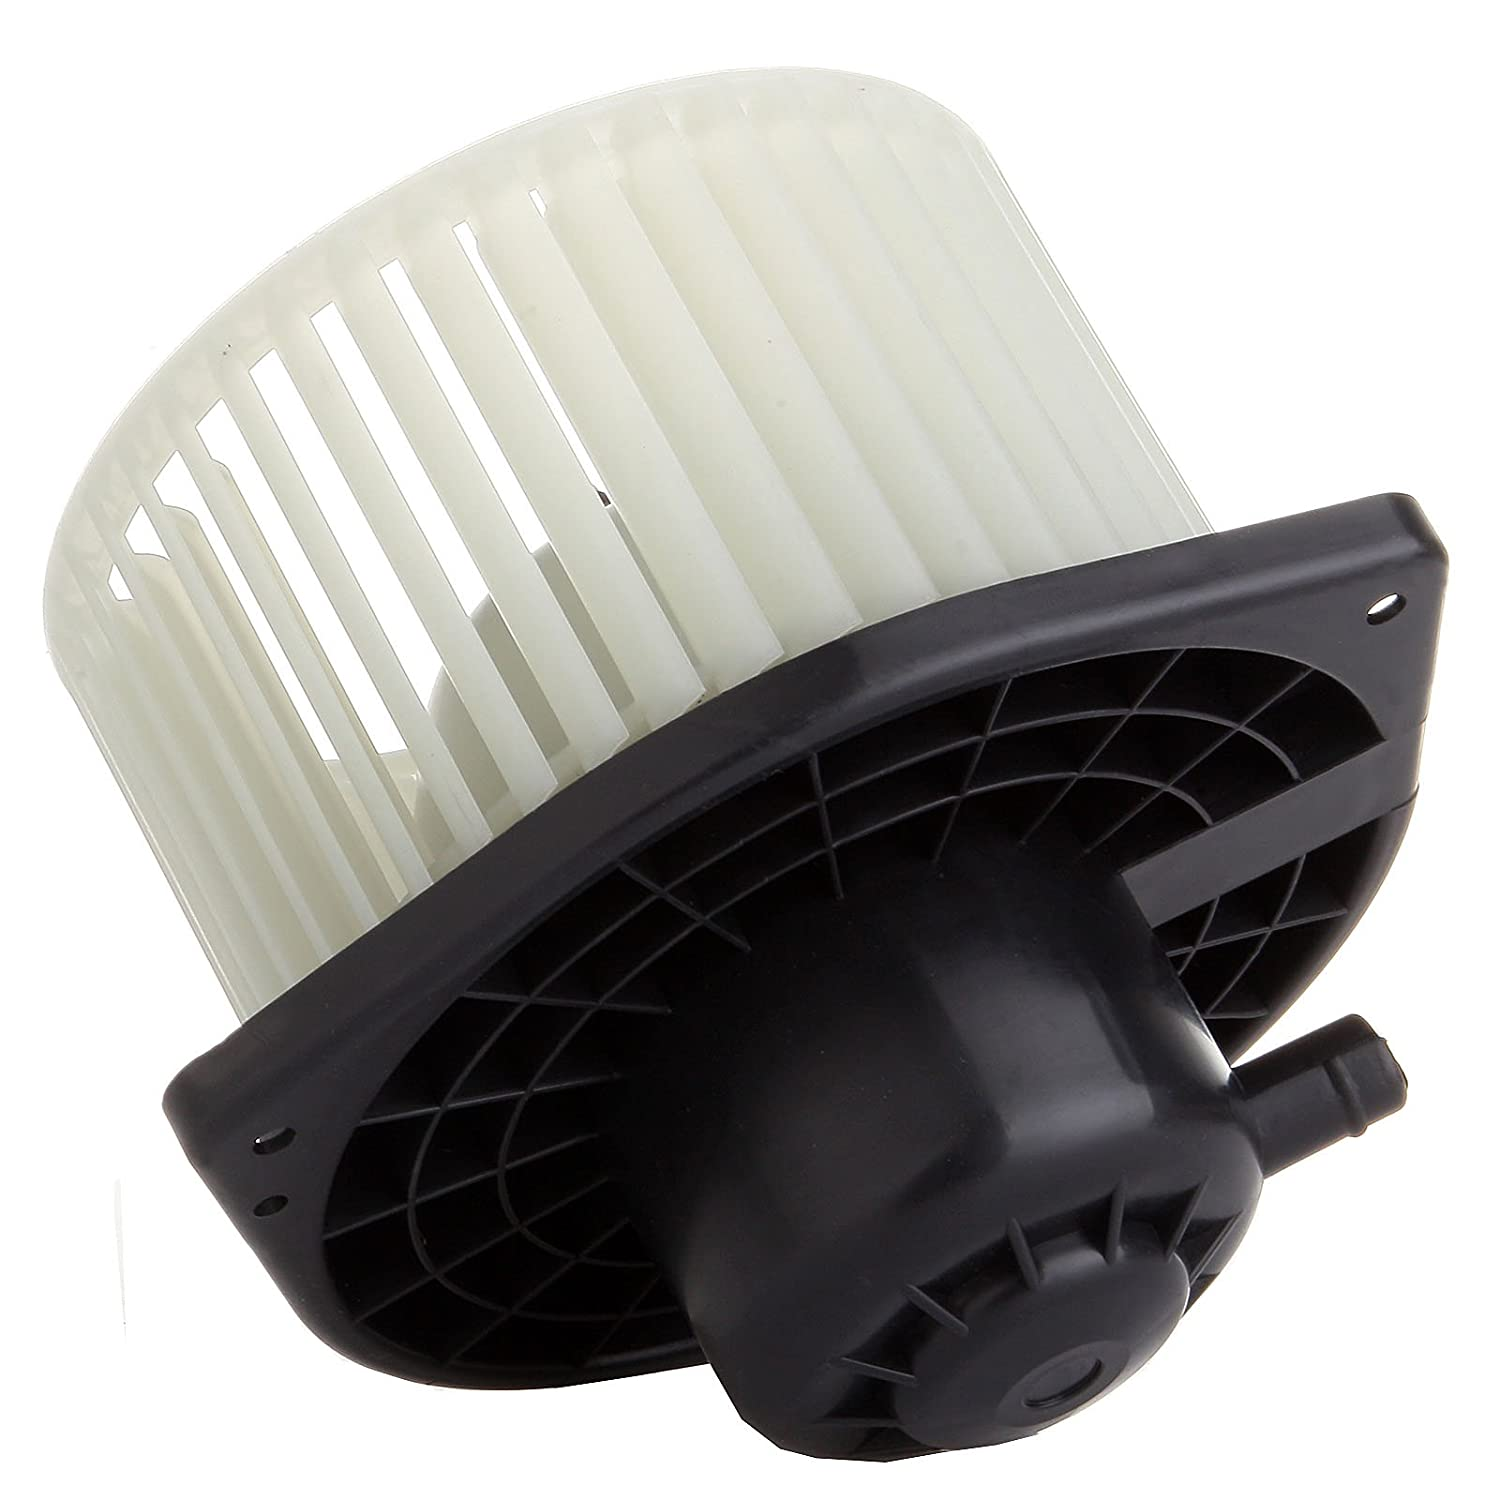 HVAC plastic Heater Blower Motor w//Fan ABS Cage ECCPP Replacement fit for 2008-2015 Mitsubishi Lancer// 2008-2013 Mitsubishi Outlander